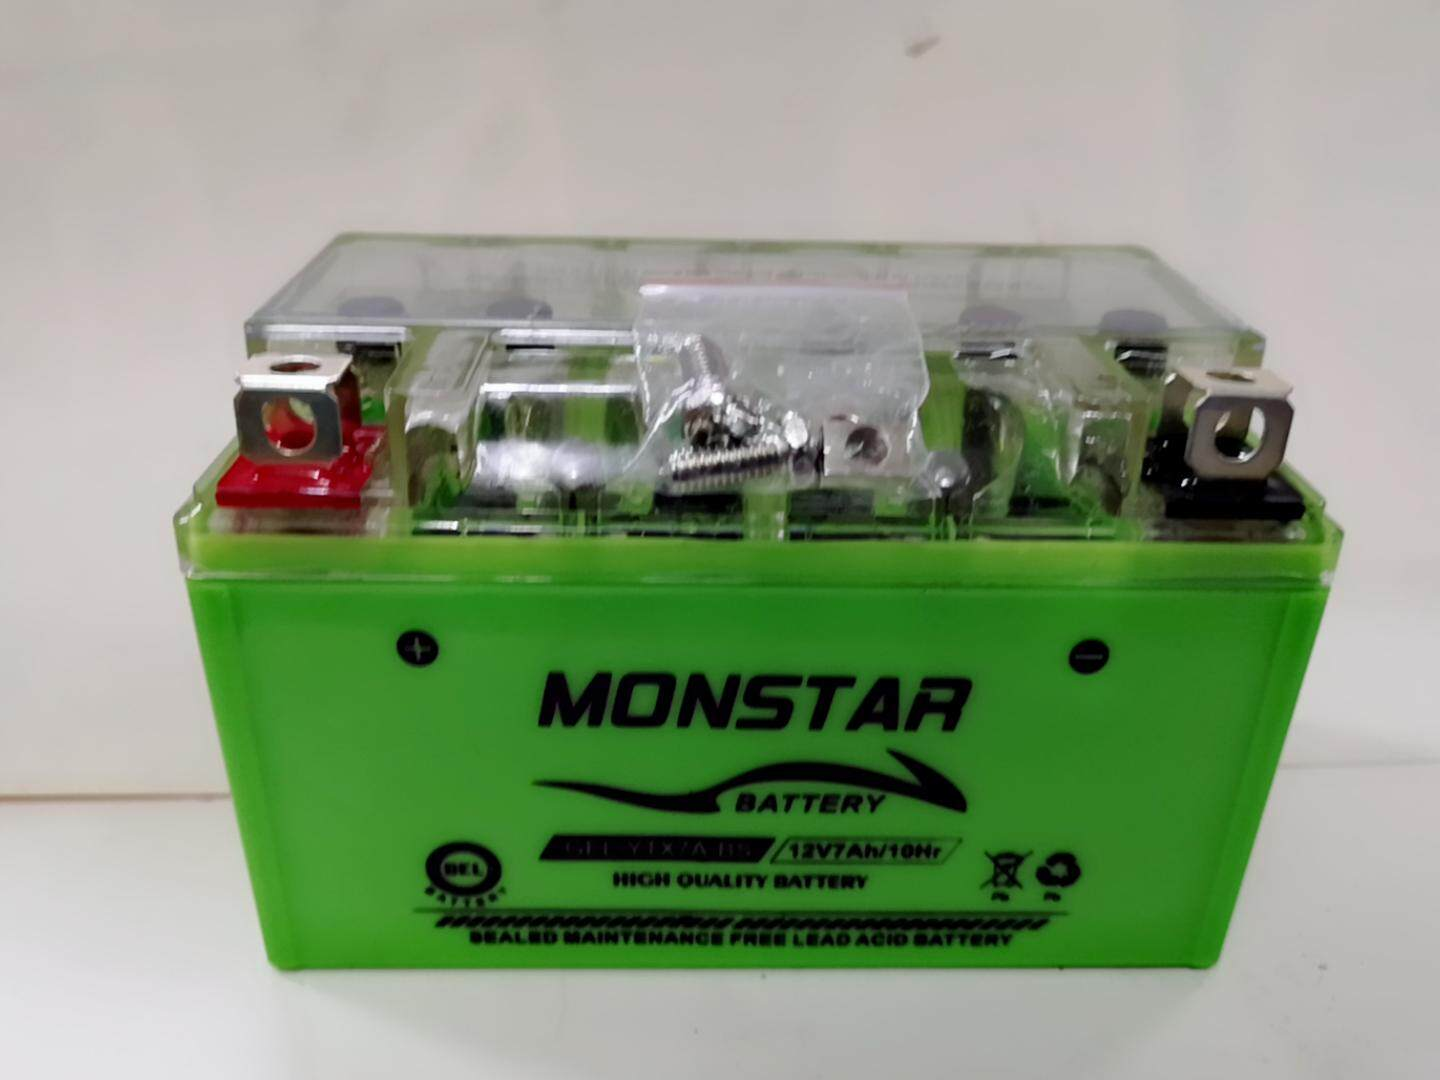 Monstar Ytx7abs Nano Gel Maintenance Free Motorcycle Battery By Excellents.